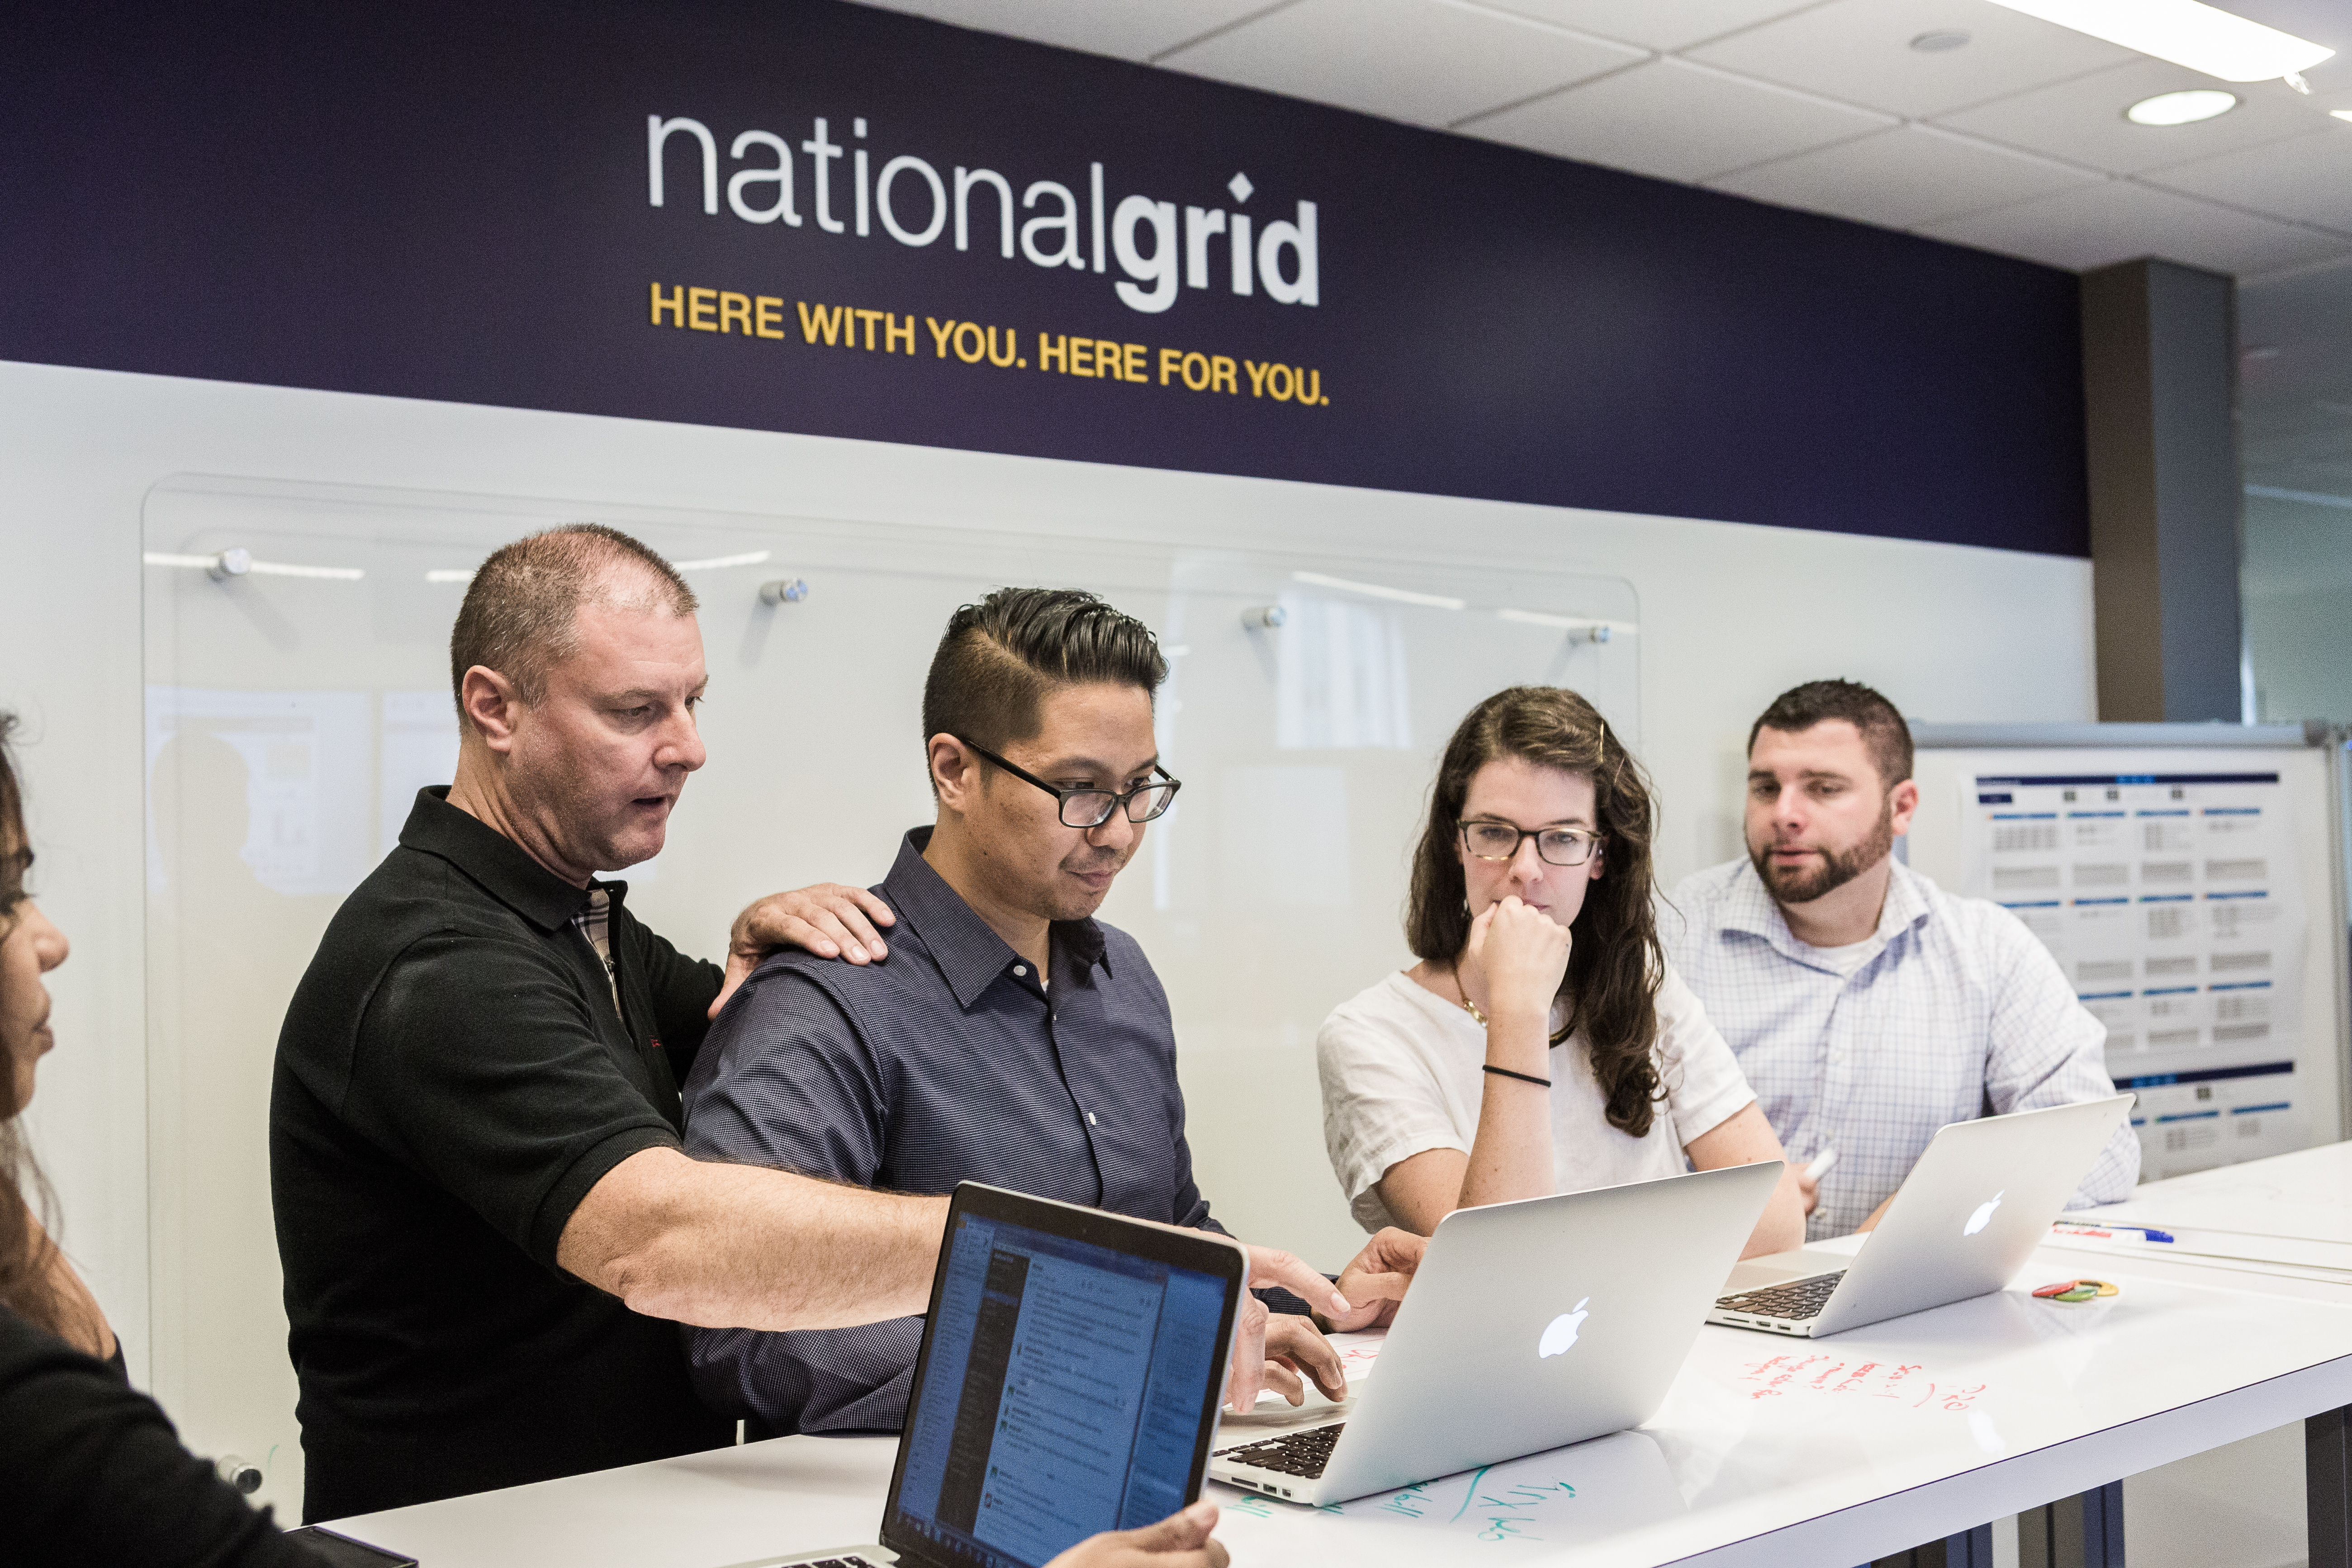 Five National Grid representatives working at a high desk with a white board in the background